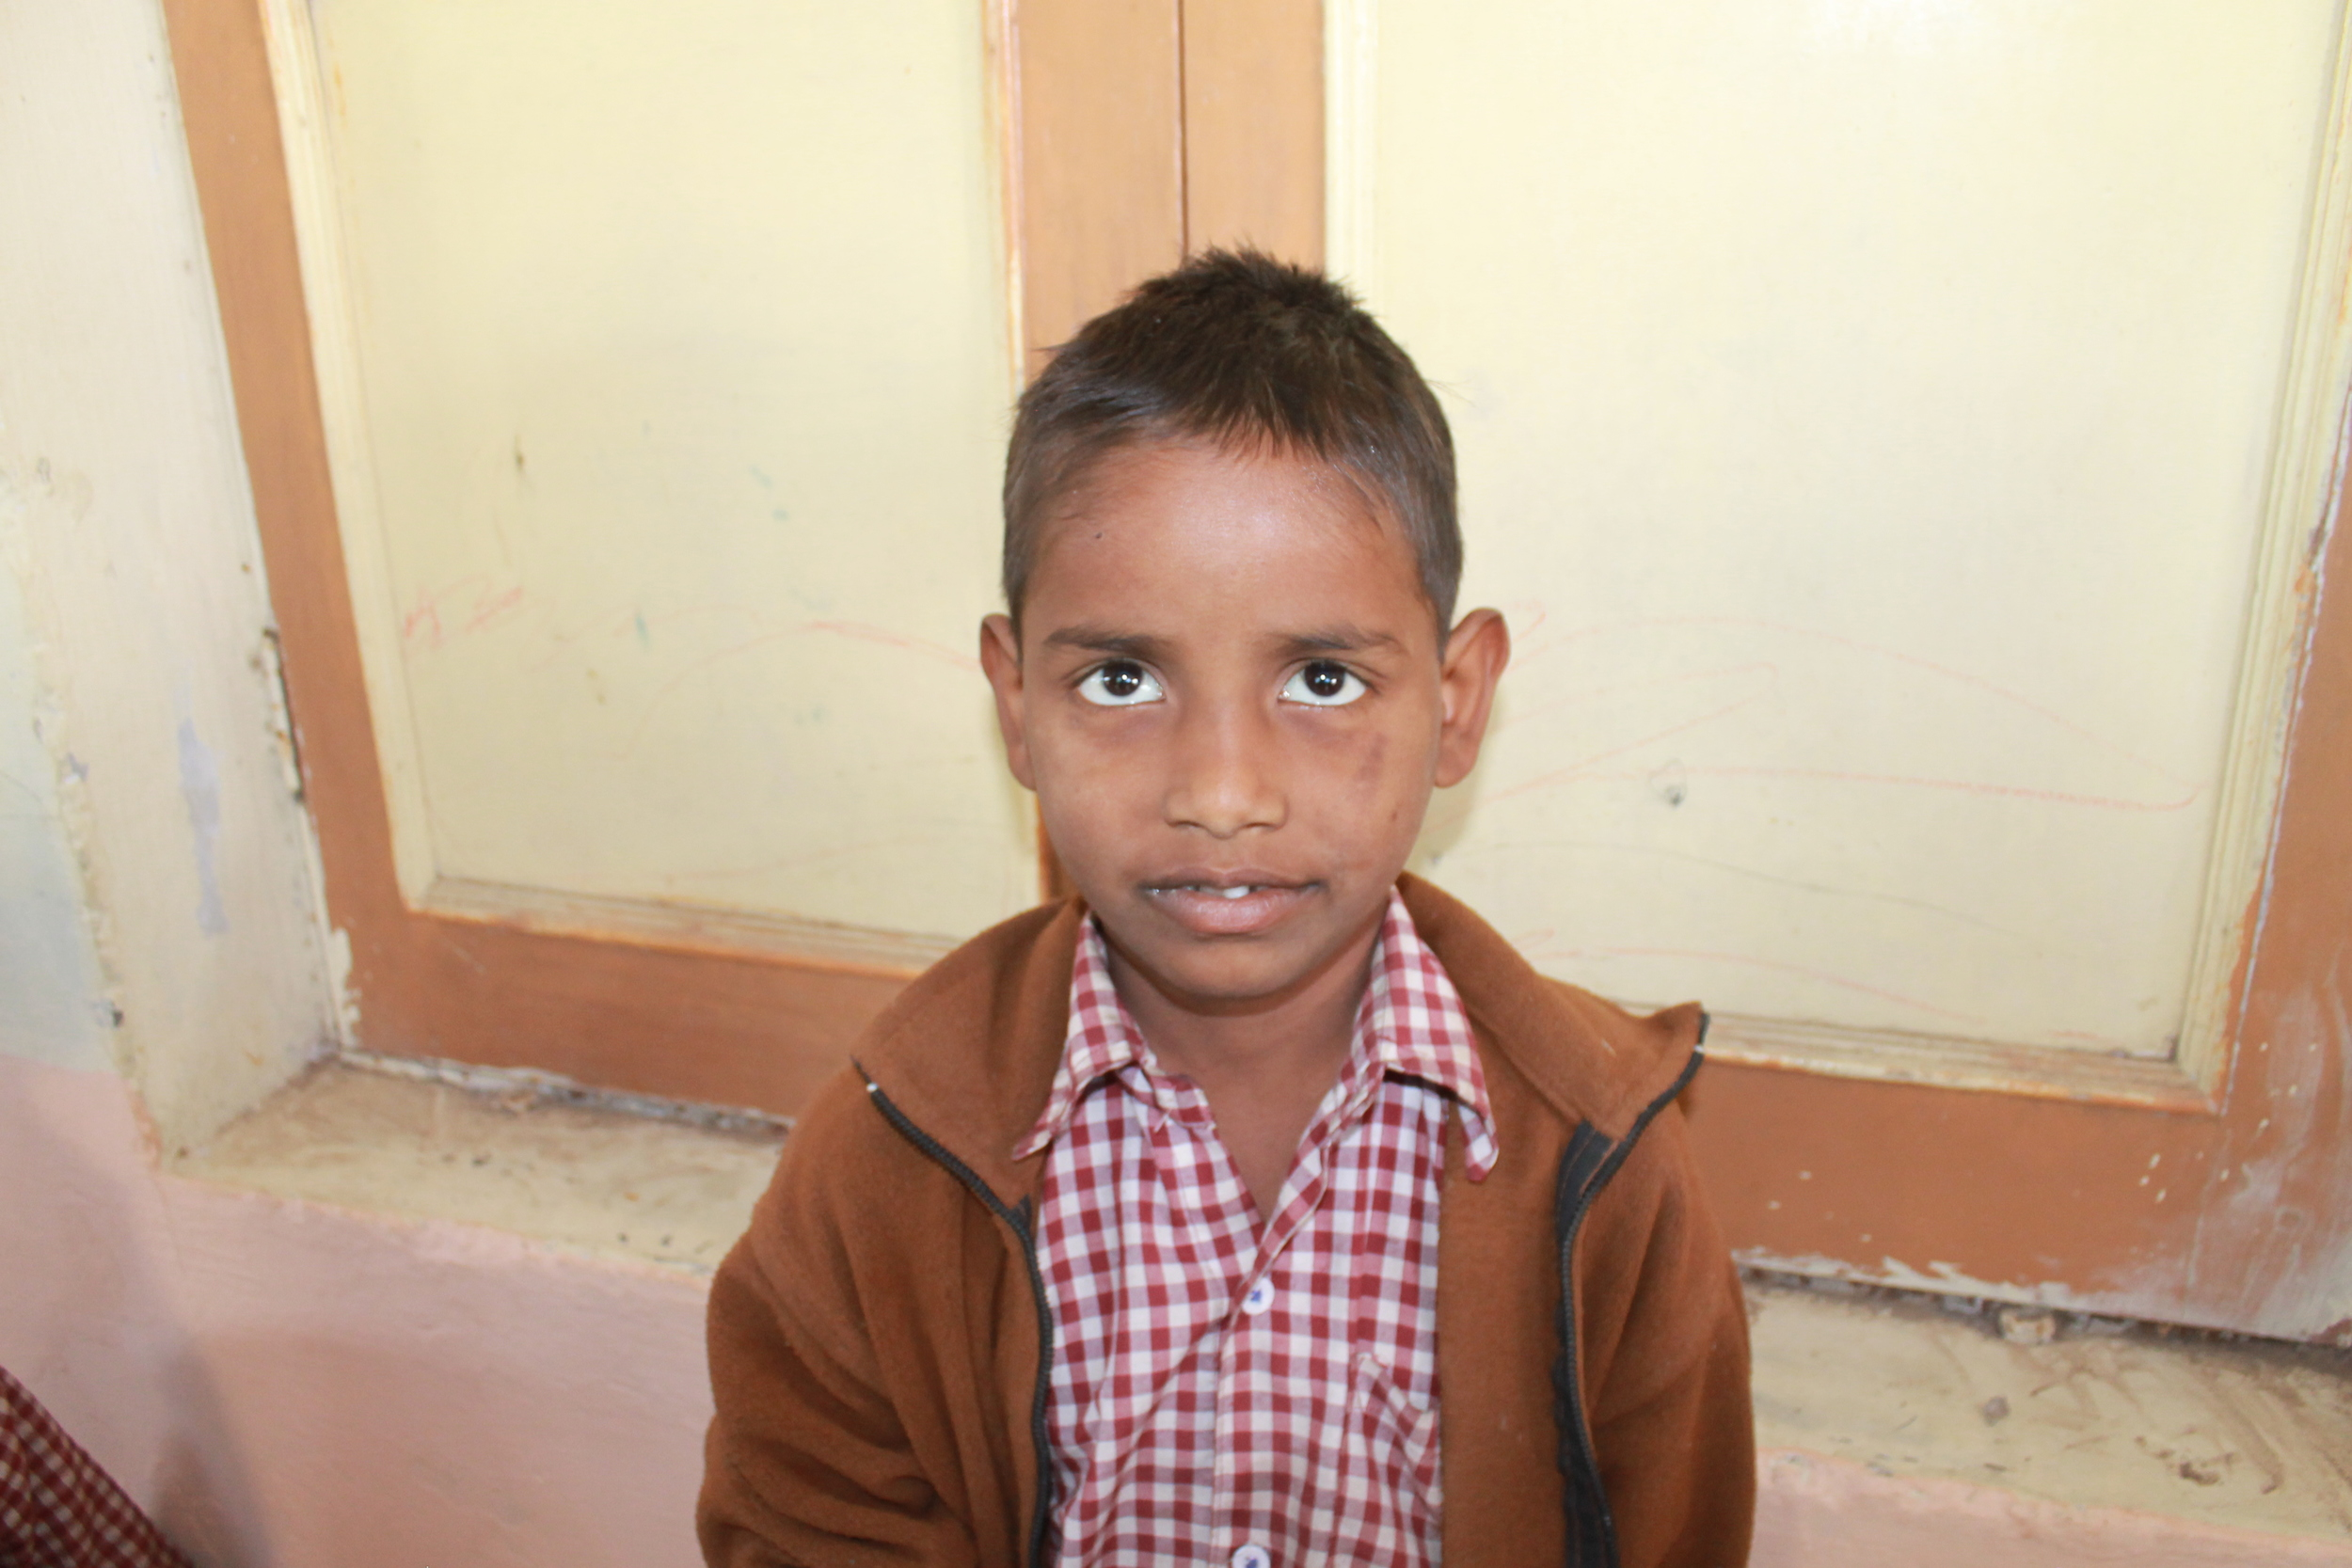 Laxman, 7 years old